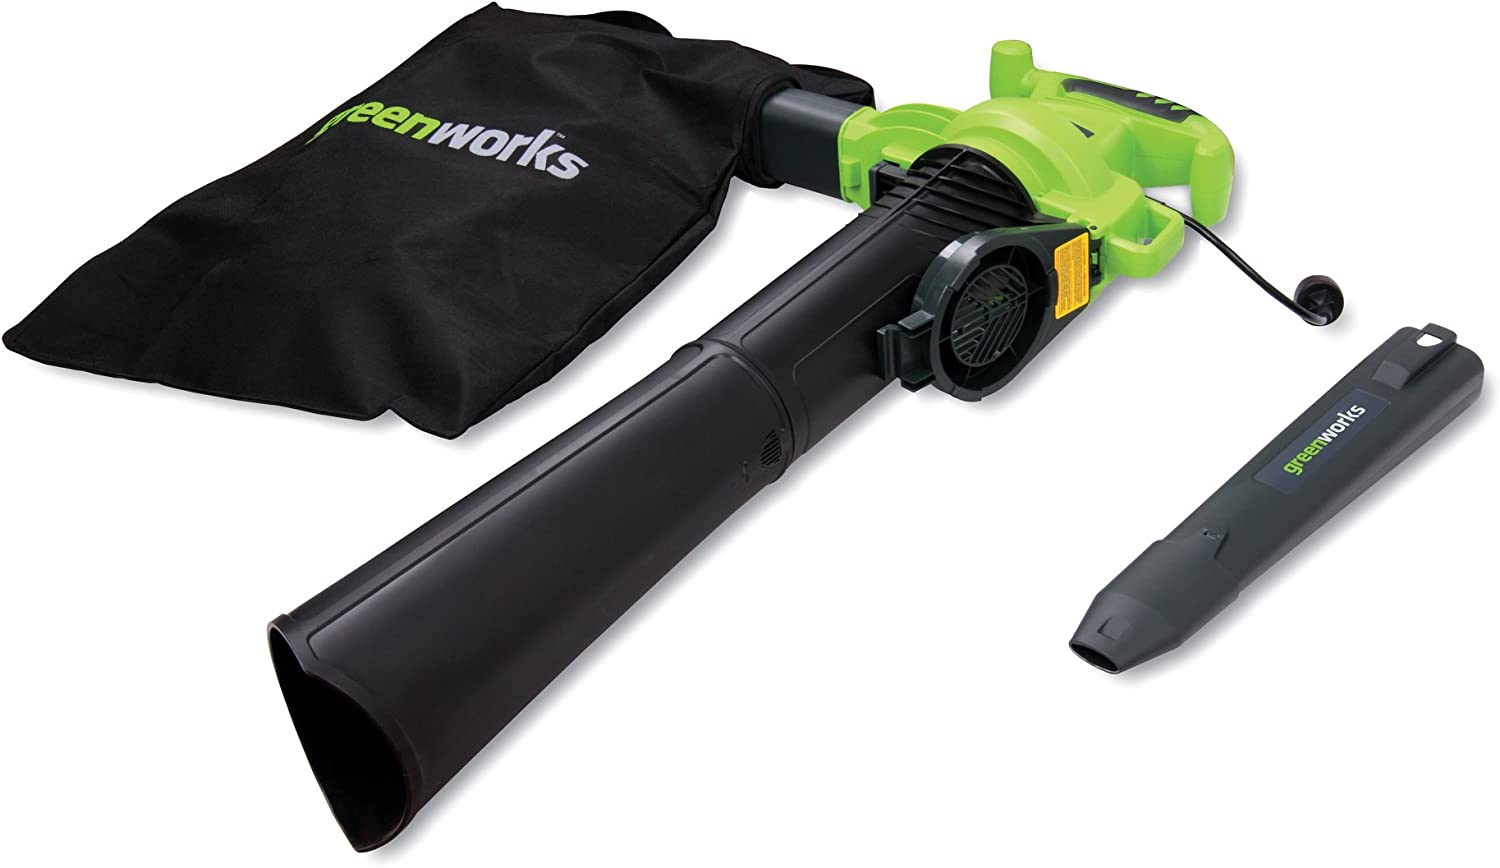 B0030BG1DQ Greenworks 24072 12A 235MPH Variable Speed Corded Blower/Vac includes Metal Repeller 71BHG03hjjL